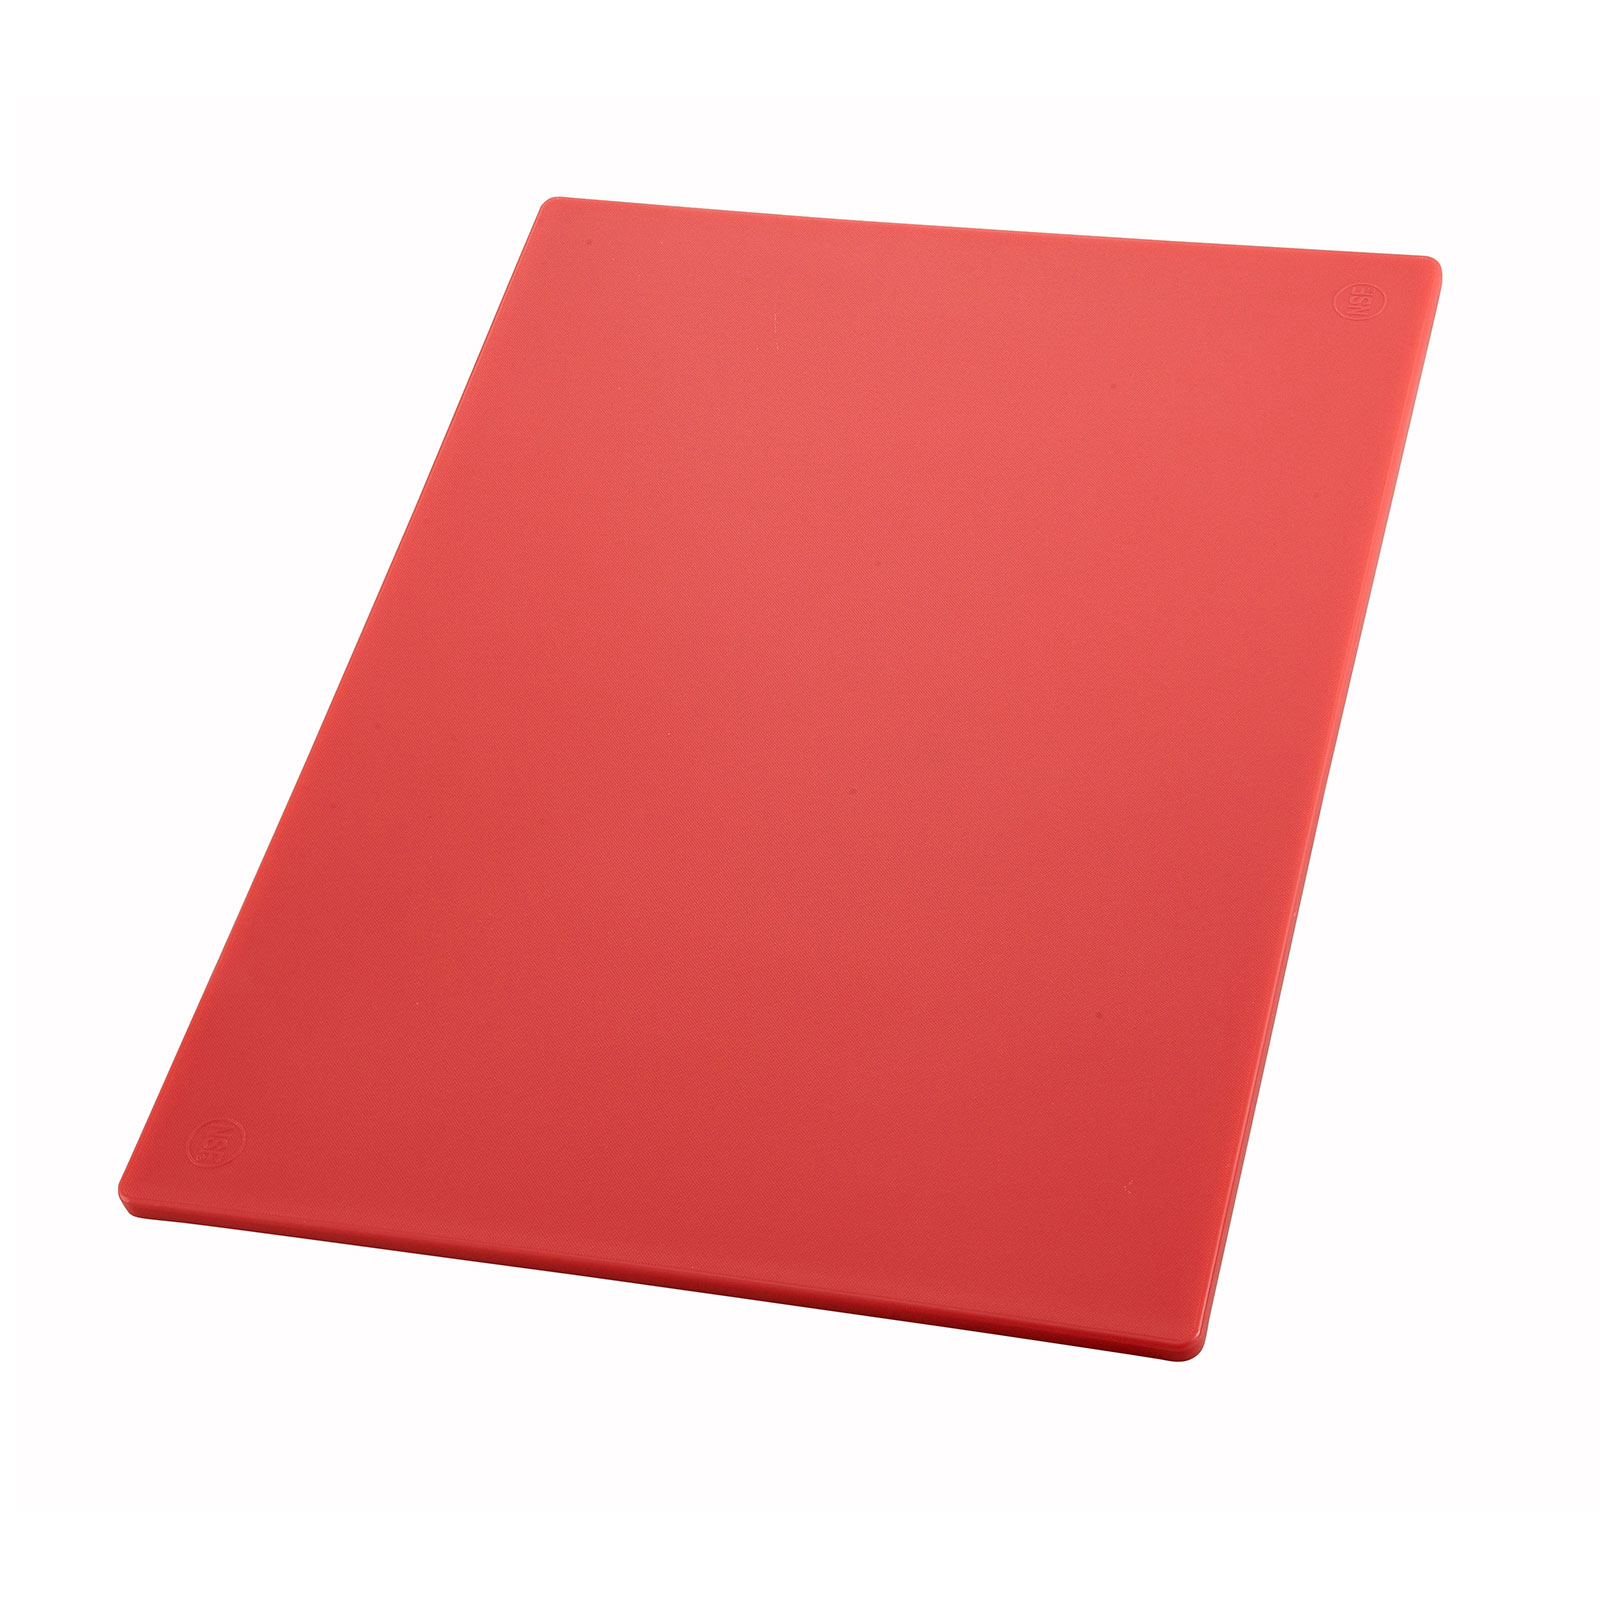 1700-31 Winco CBRD-1520 cutting board, plastic